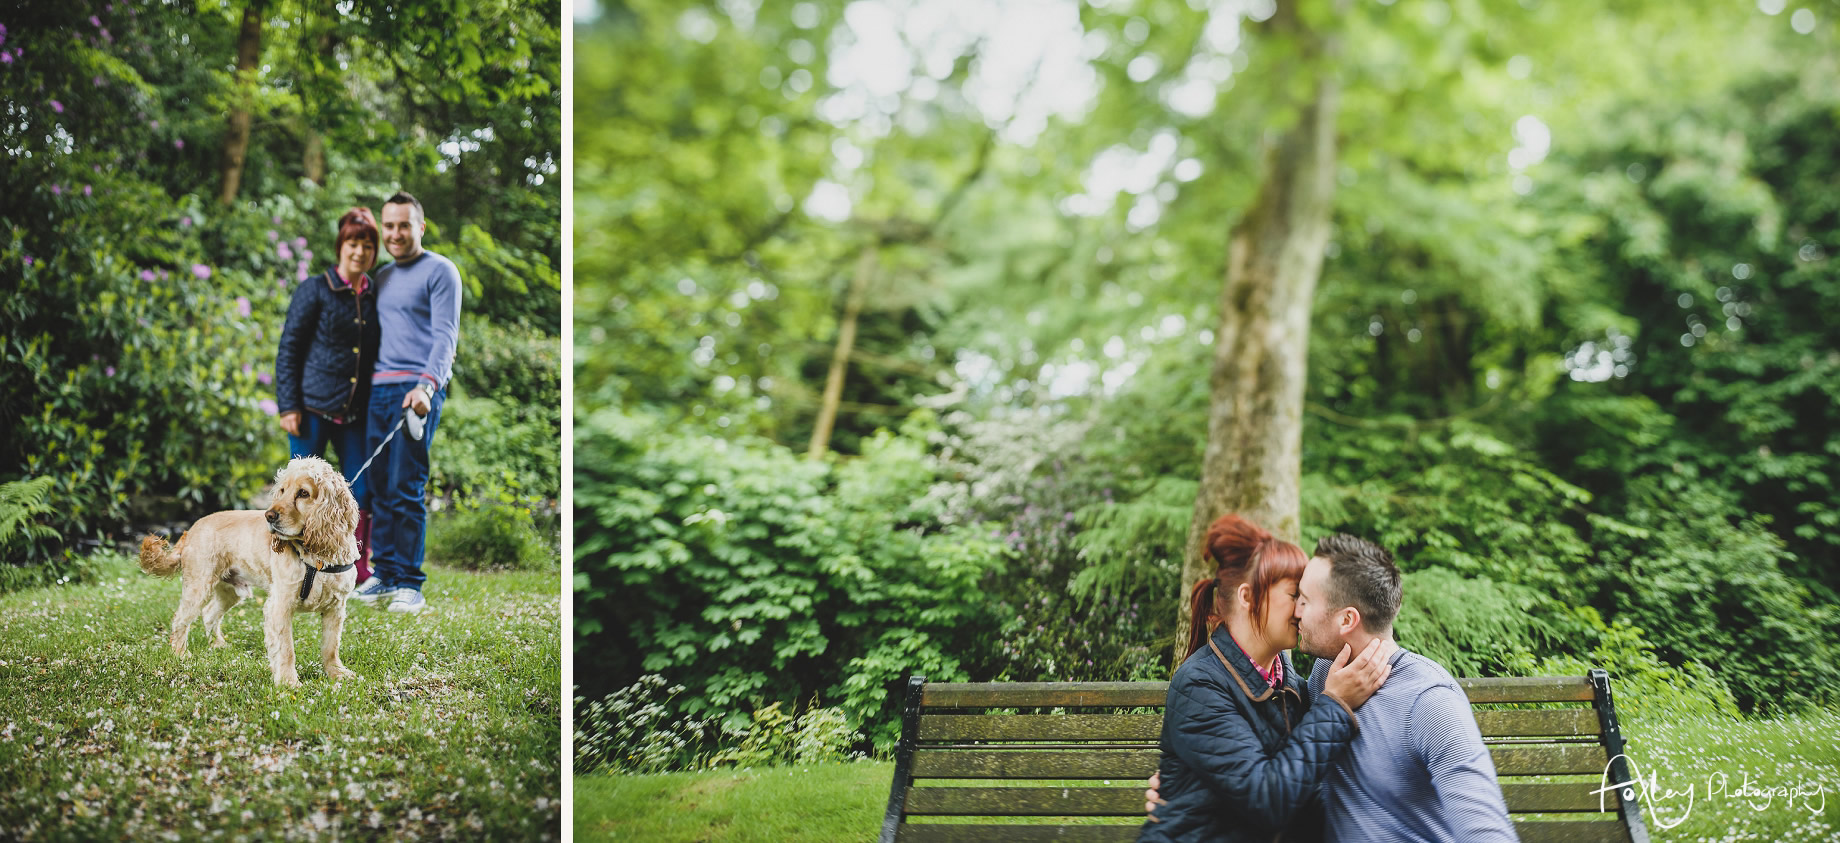 Mary-and-Adam-Pre-Wedding-Shoot-at-Corporation-Park-012